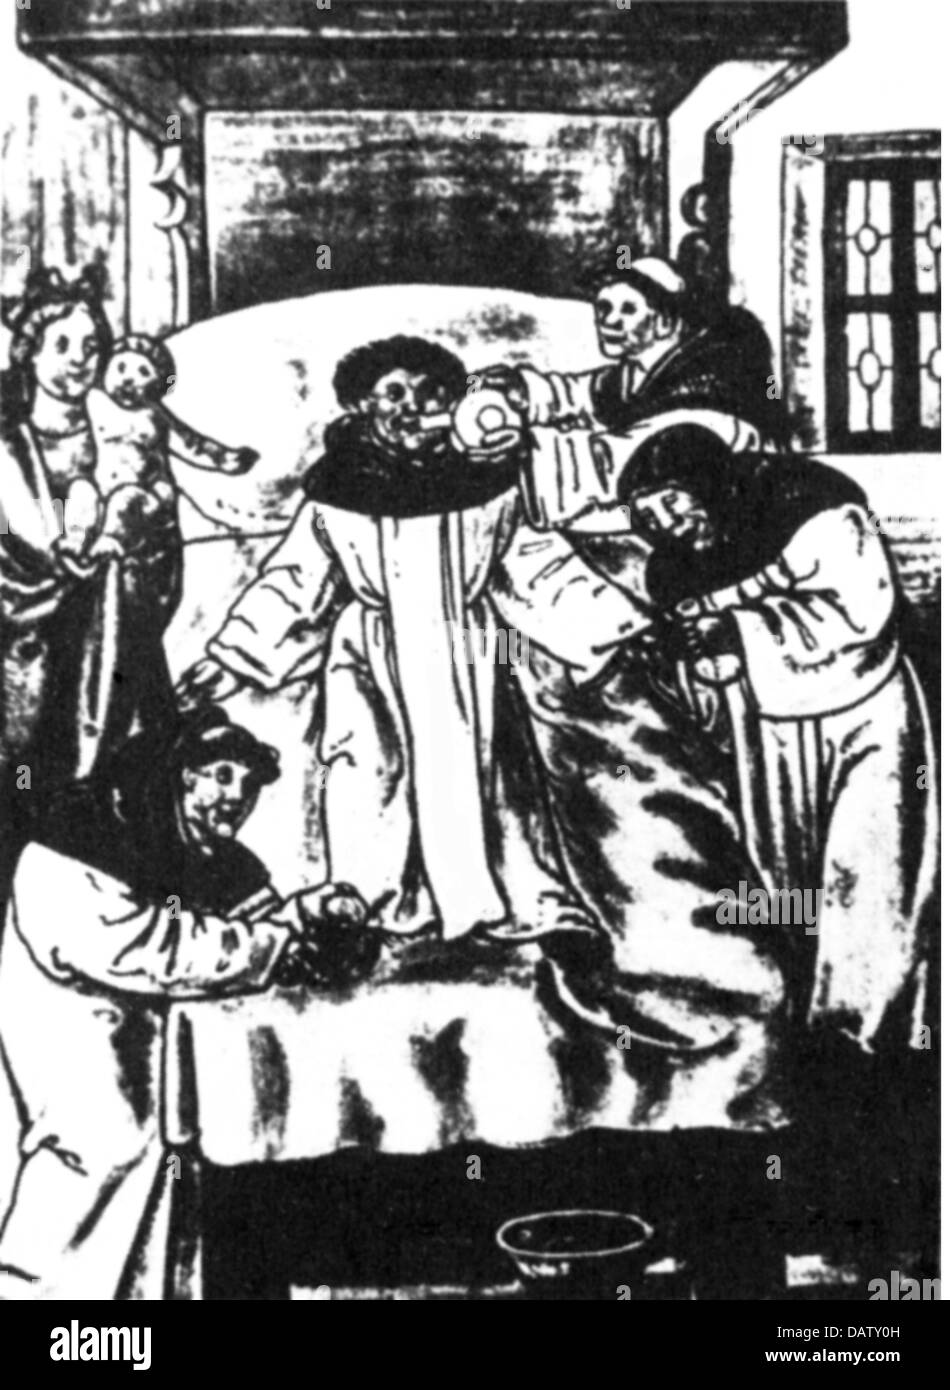 medicine, anesthesia, administration of alcohol as anaesthetic in a monastery hospital, woodcut, 15th century, 15th - Stock Image